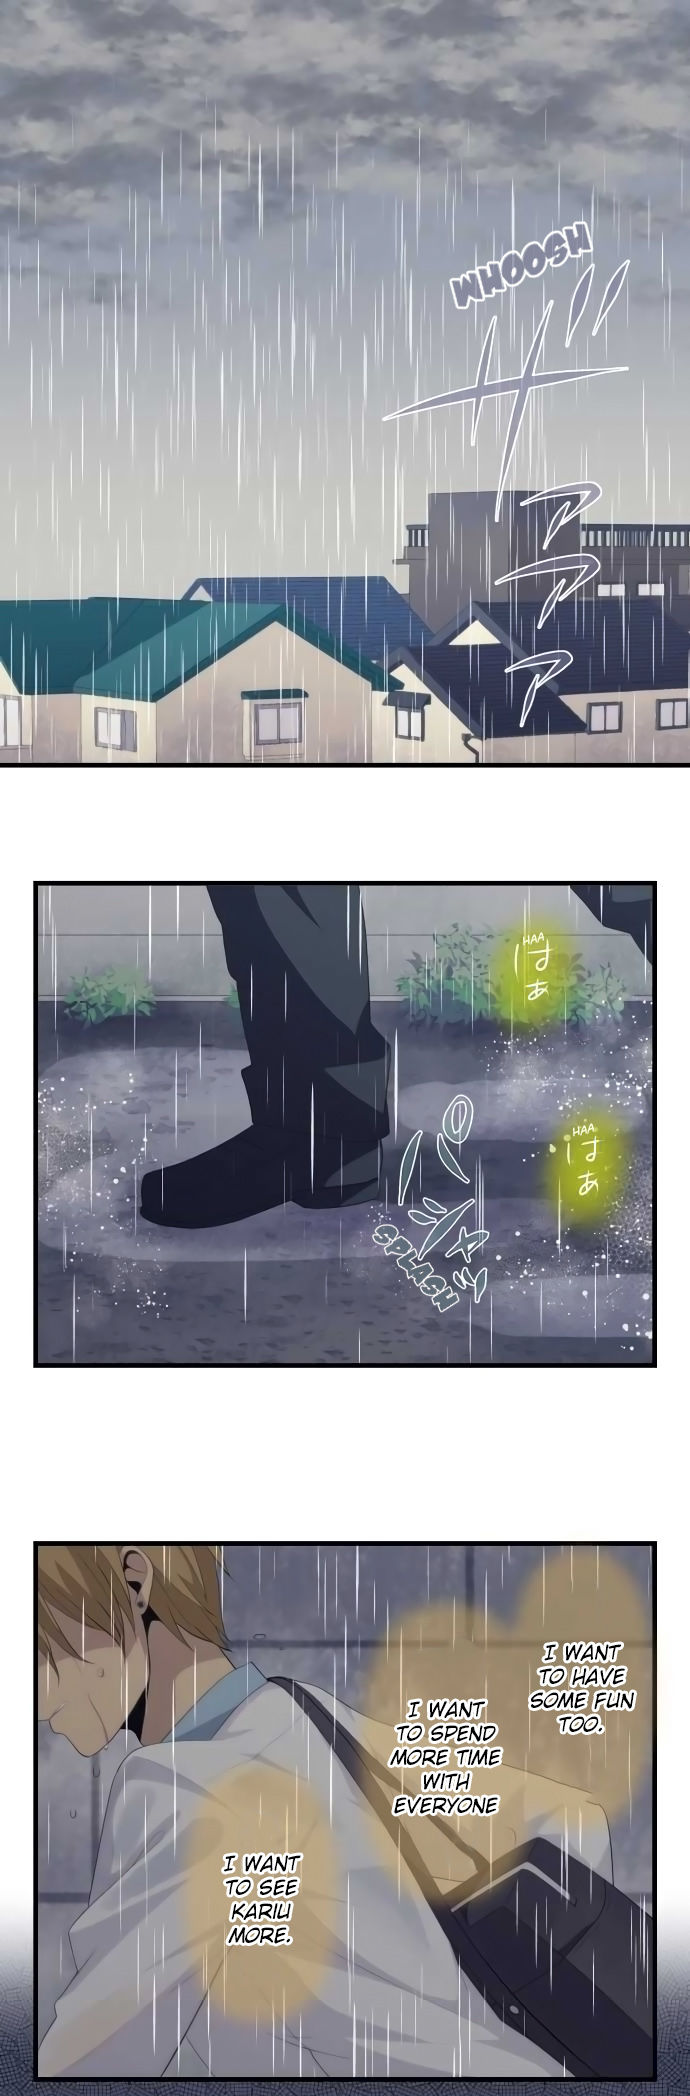 ReLIFE 166 Page 1